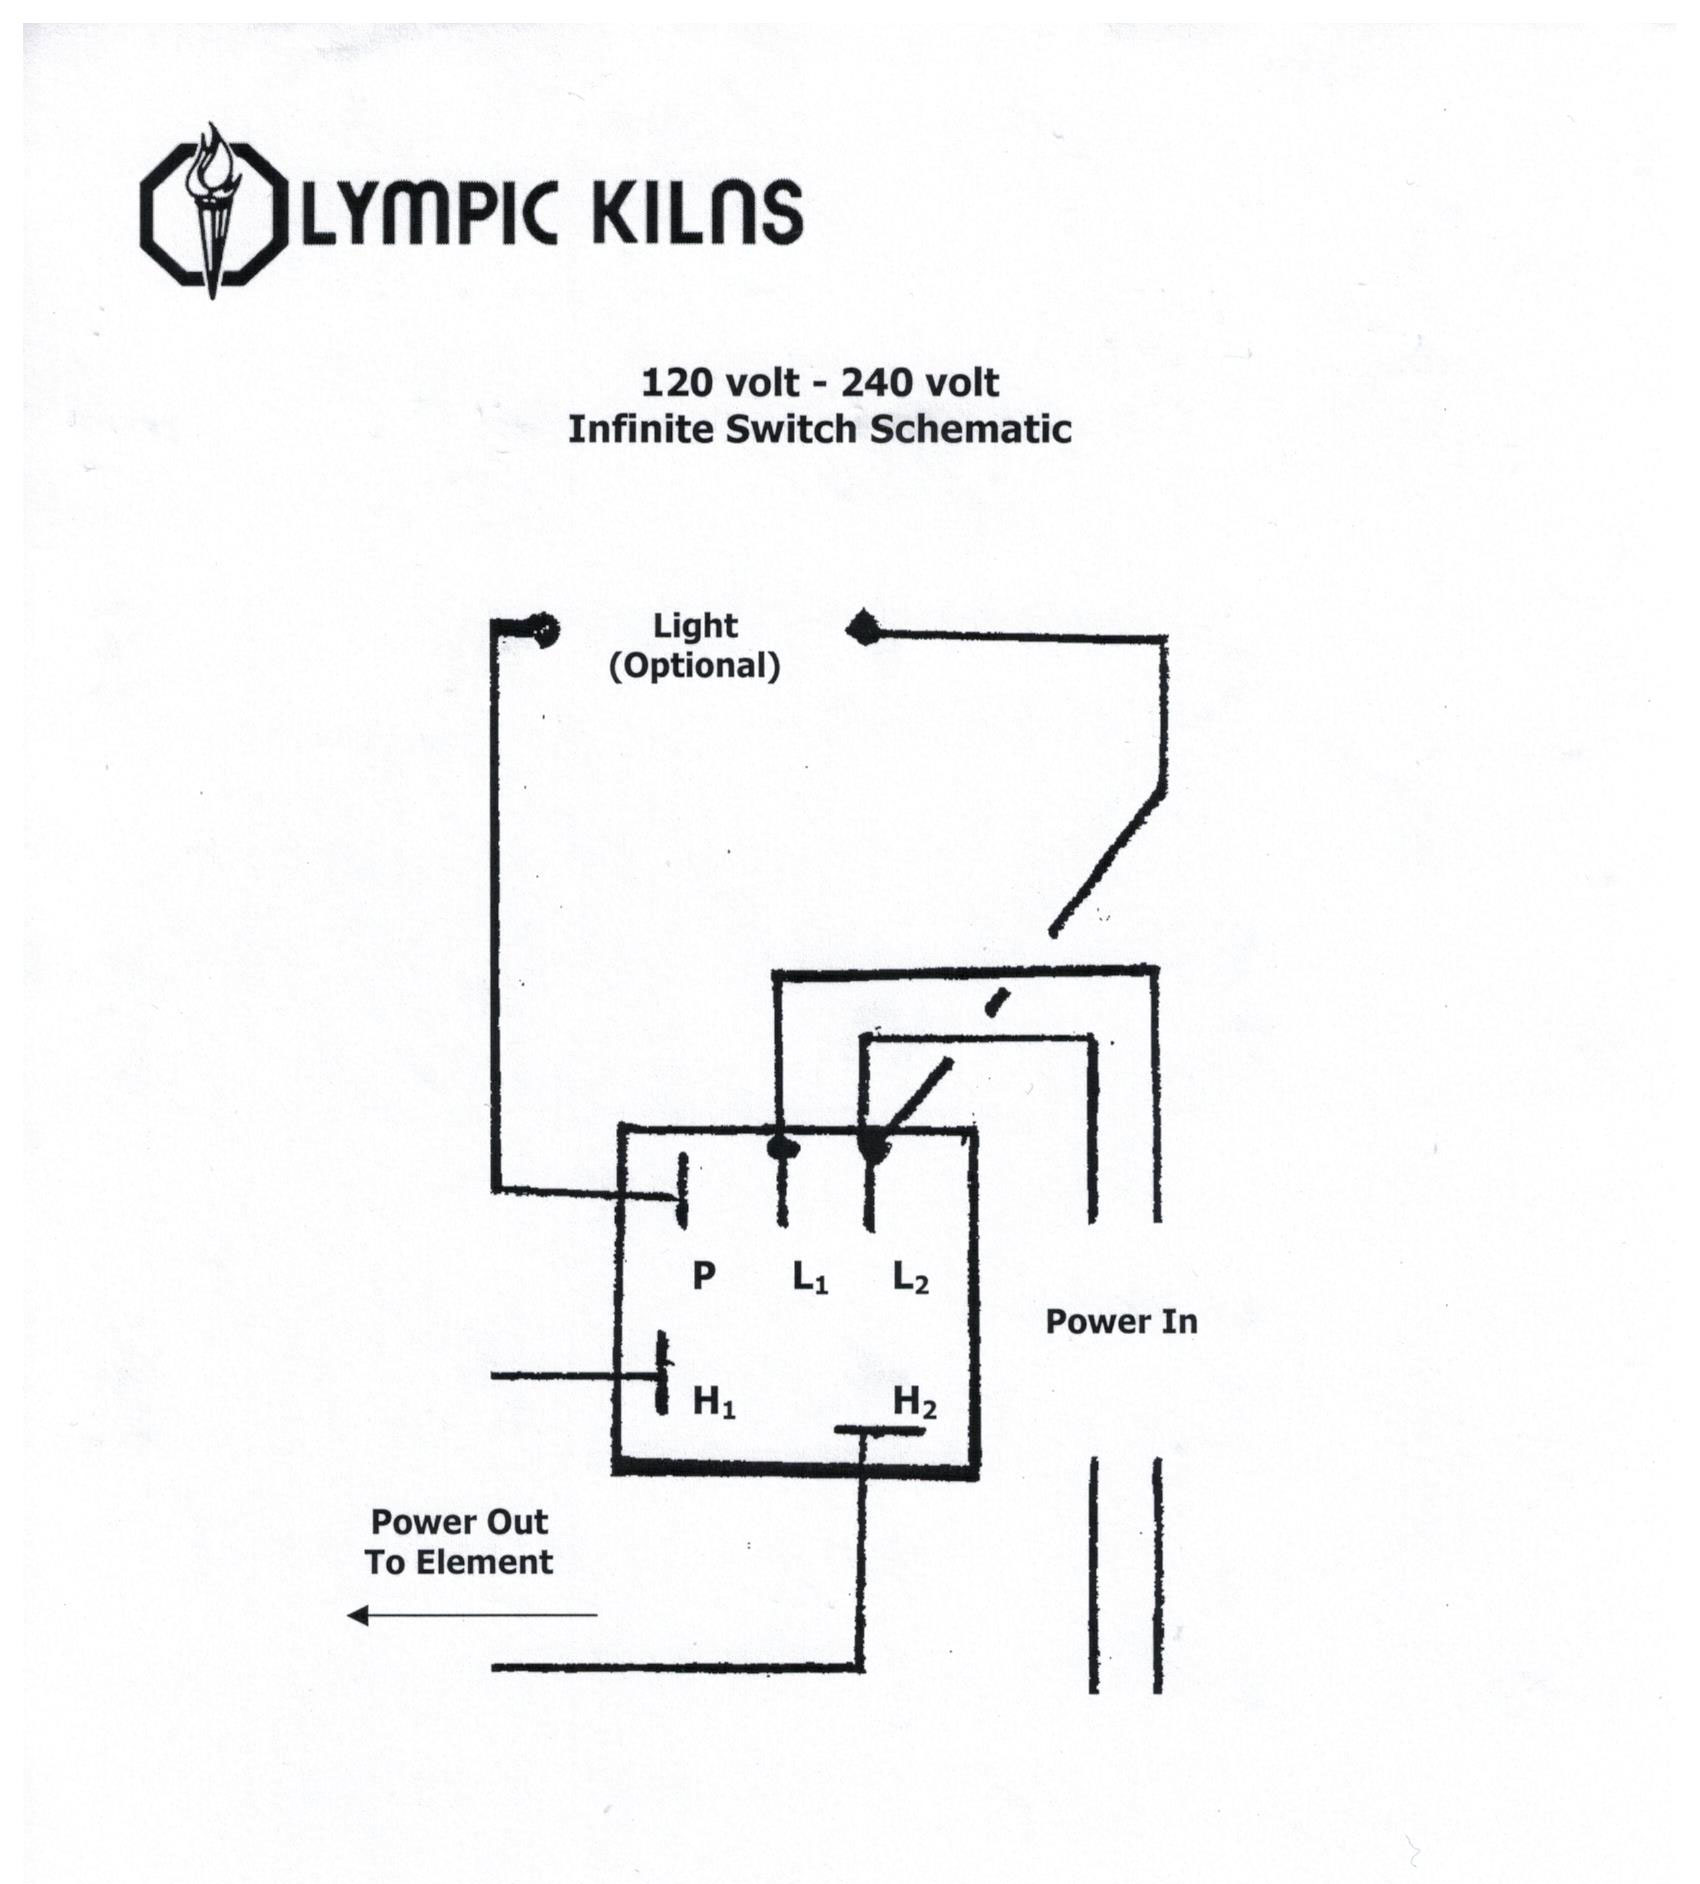 infinite switch fuji pxw4 kiln wiring diagram pid wiring diagram \u2022 wiring diagram Basic Electrical Wiring Diagrams at bayanpartner.co